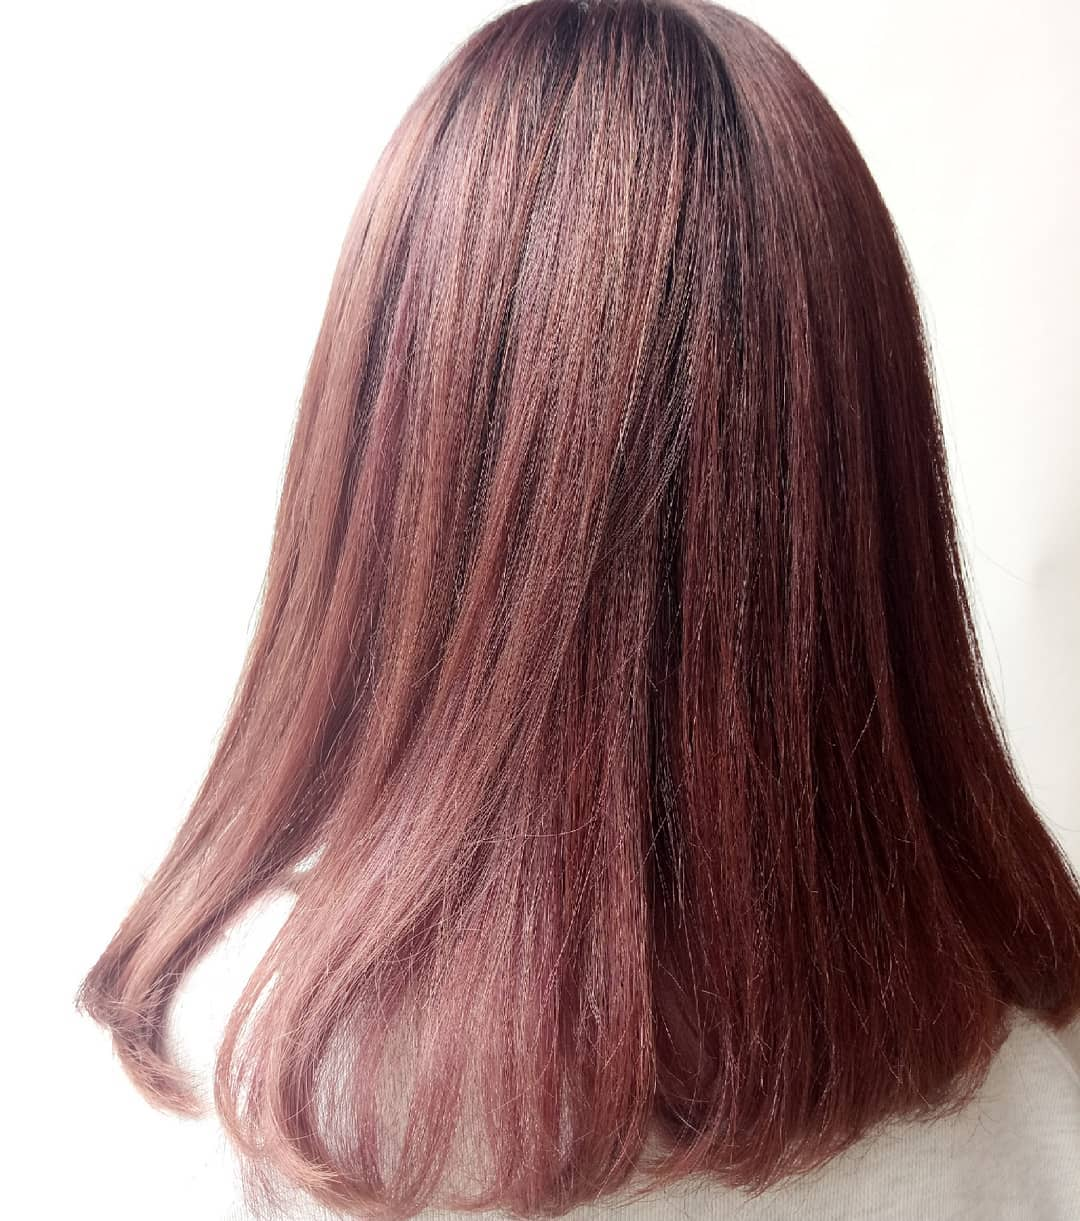 Dark Red Hair Colour by Manami from Walking on Sunshine